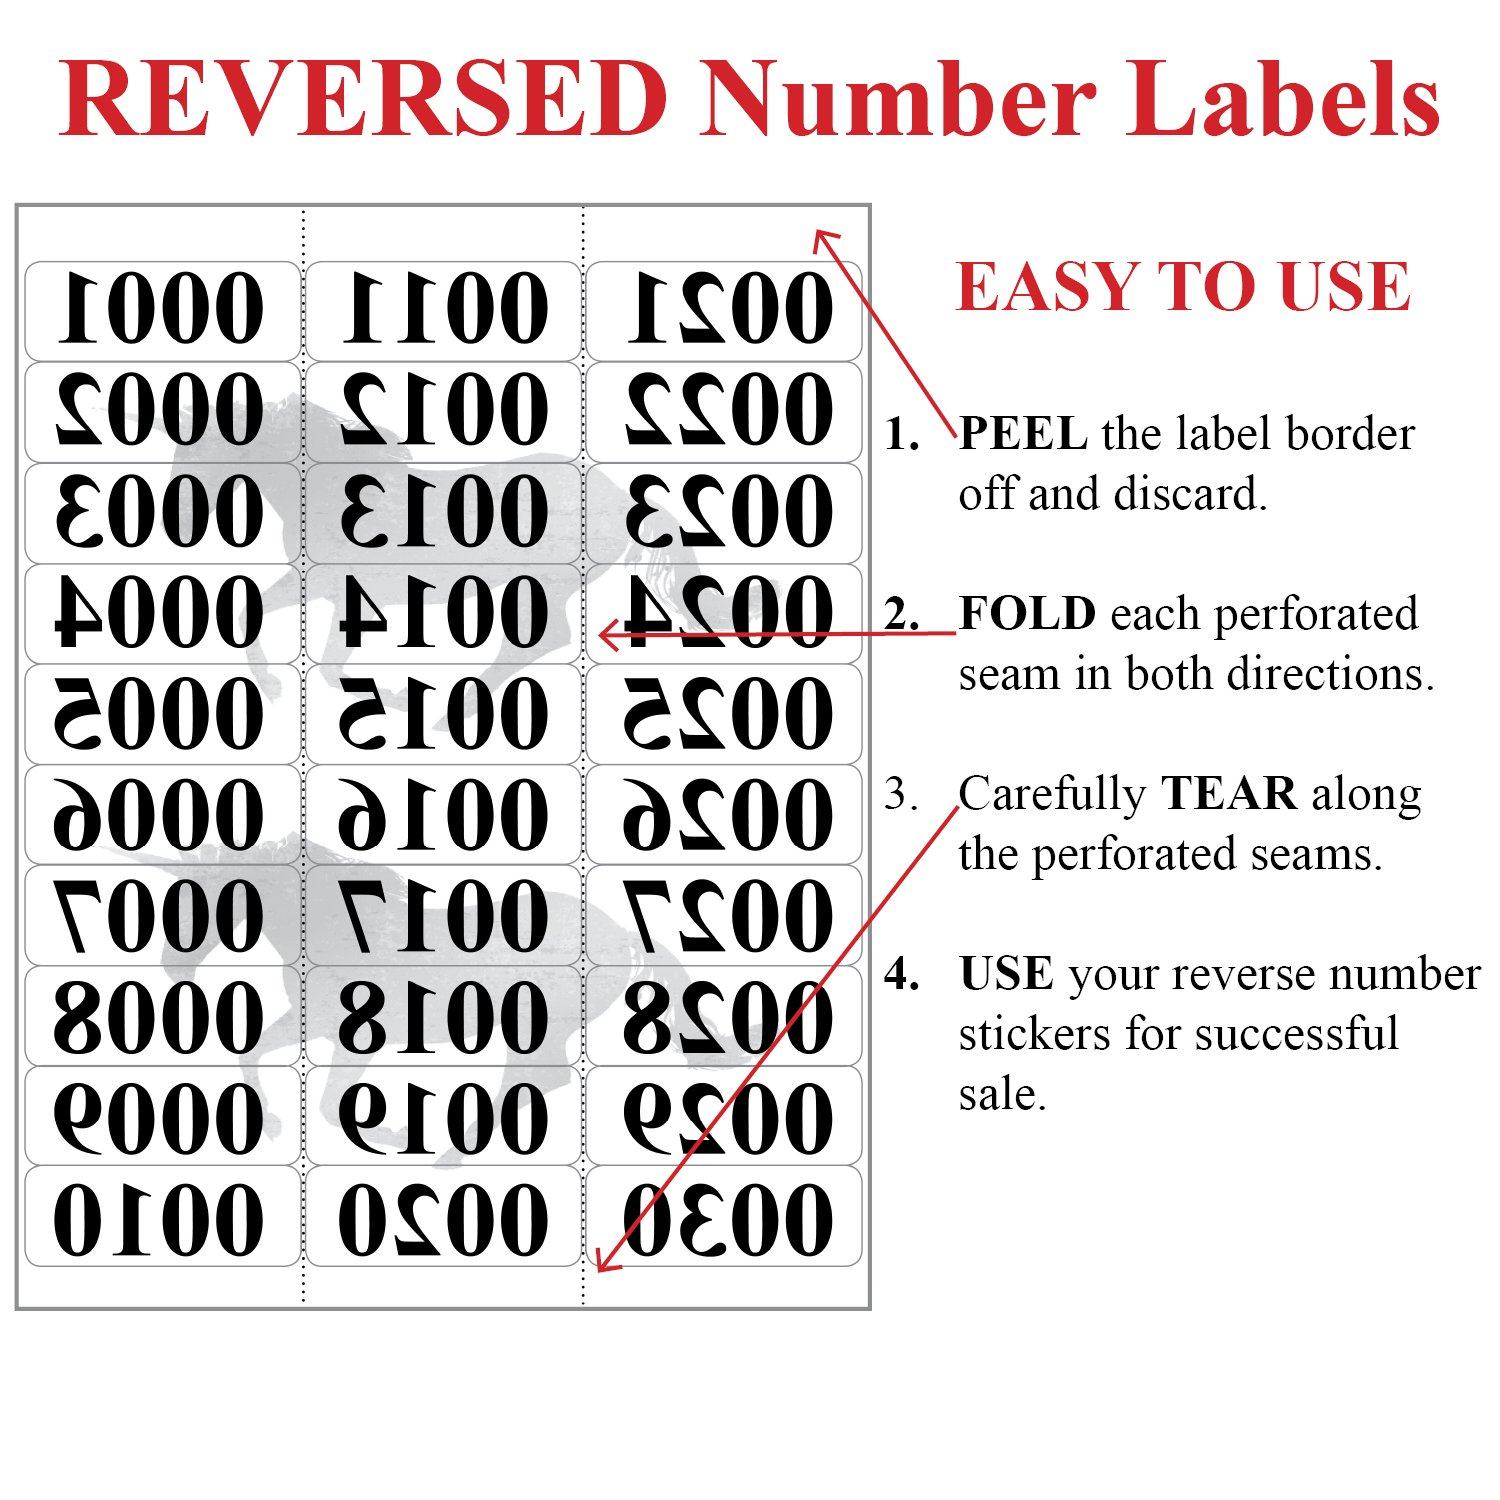 Amazon.com : Reverse Number Sticker Labels   0001 - 1000 Mirrored ...